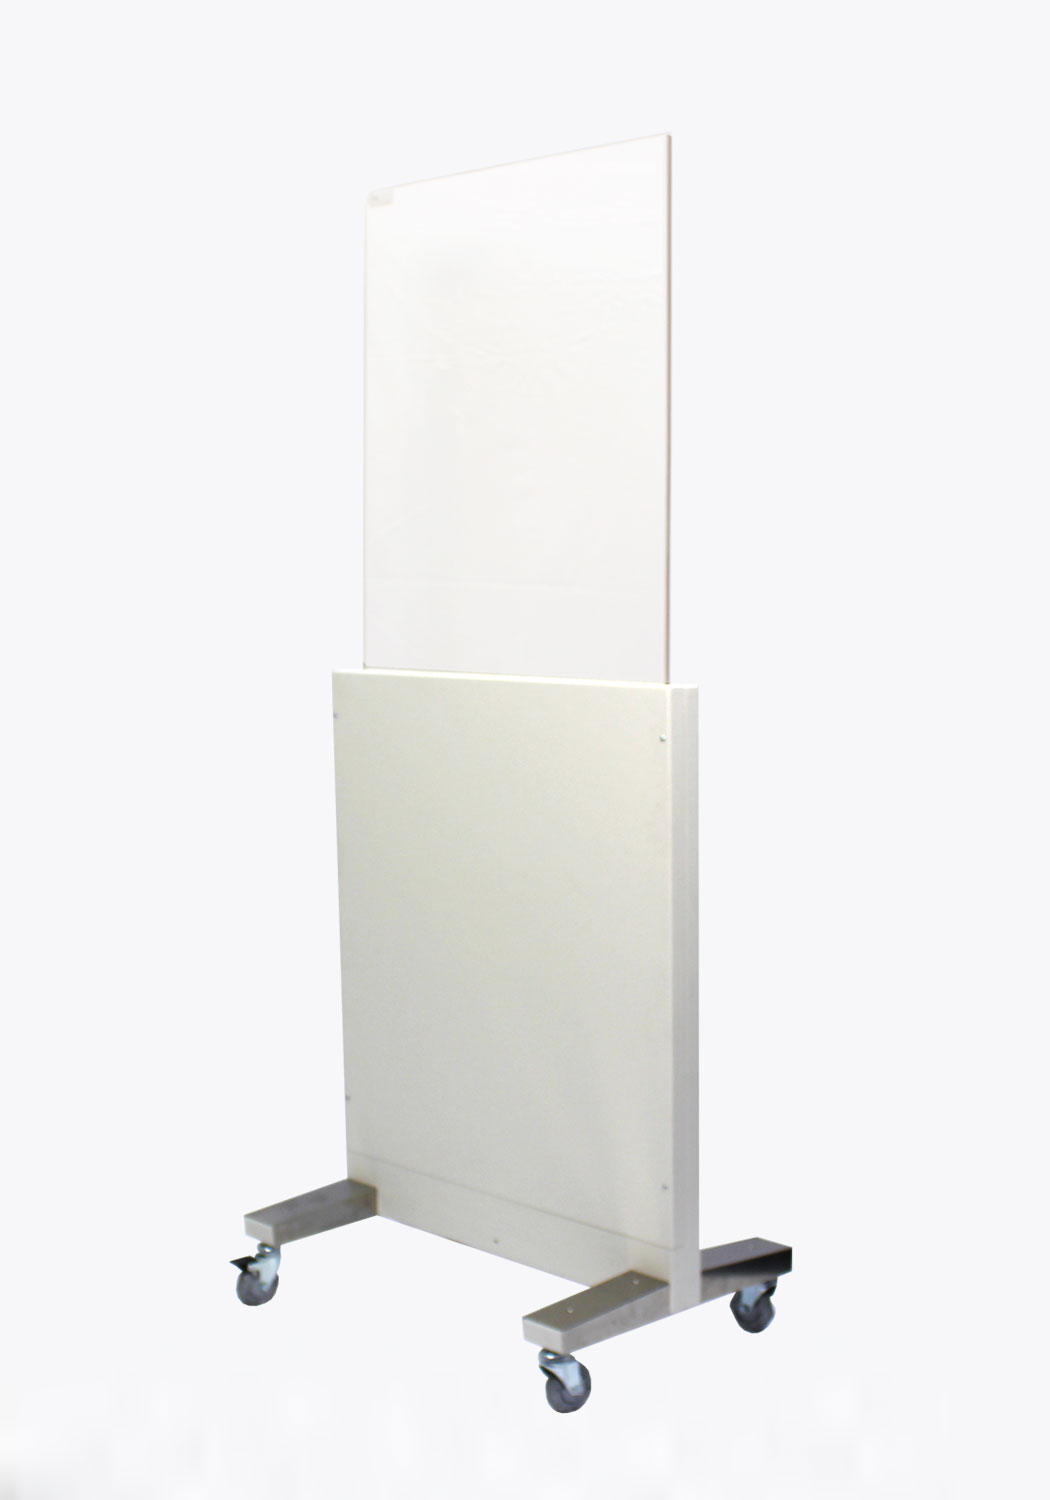 Technologist Protection X Ray Mobile Barrier